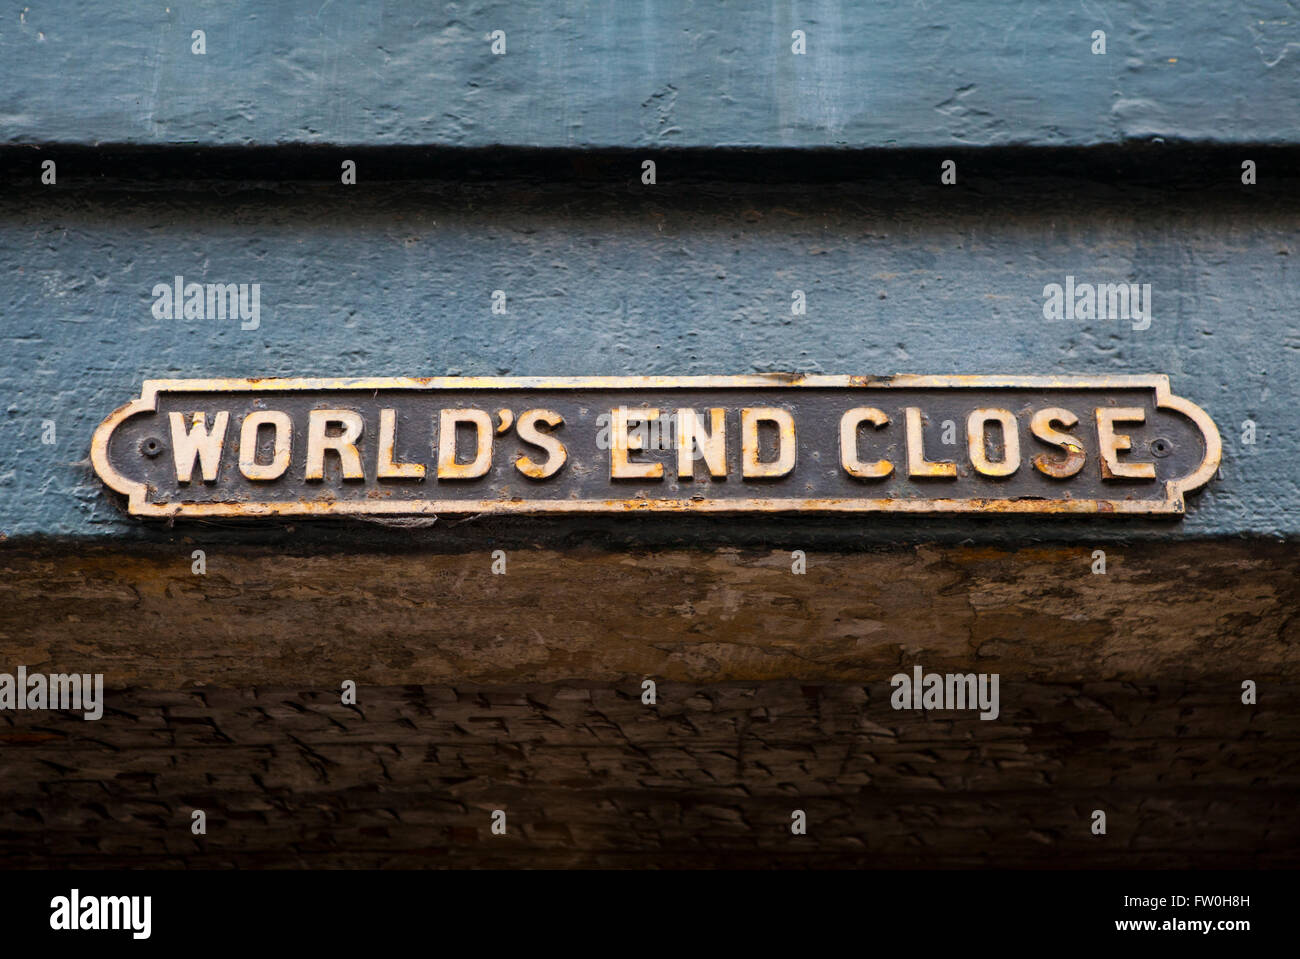 The street sign for Worlds End Close in Edinburgh, Scotland. Stock Photo